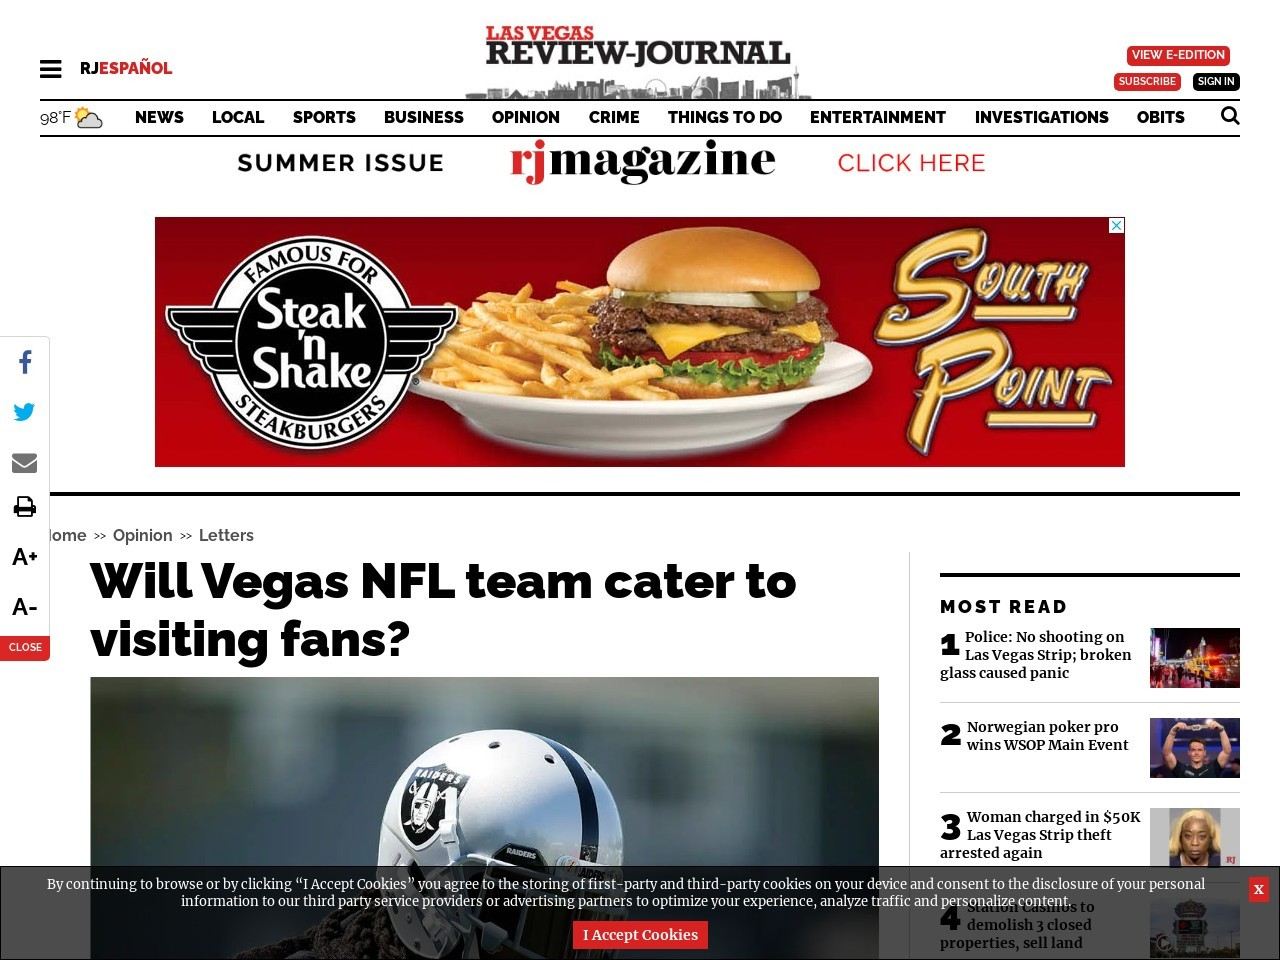 Will Vegas NFL team cater to visiting fans?